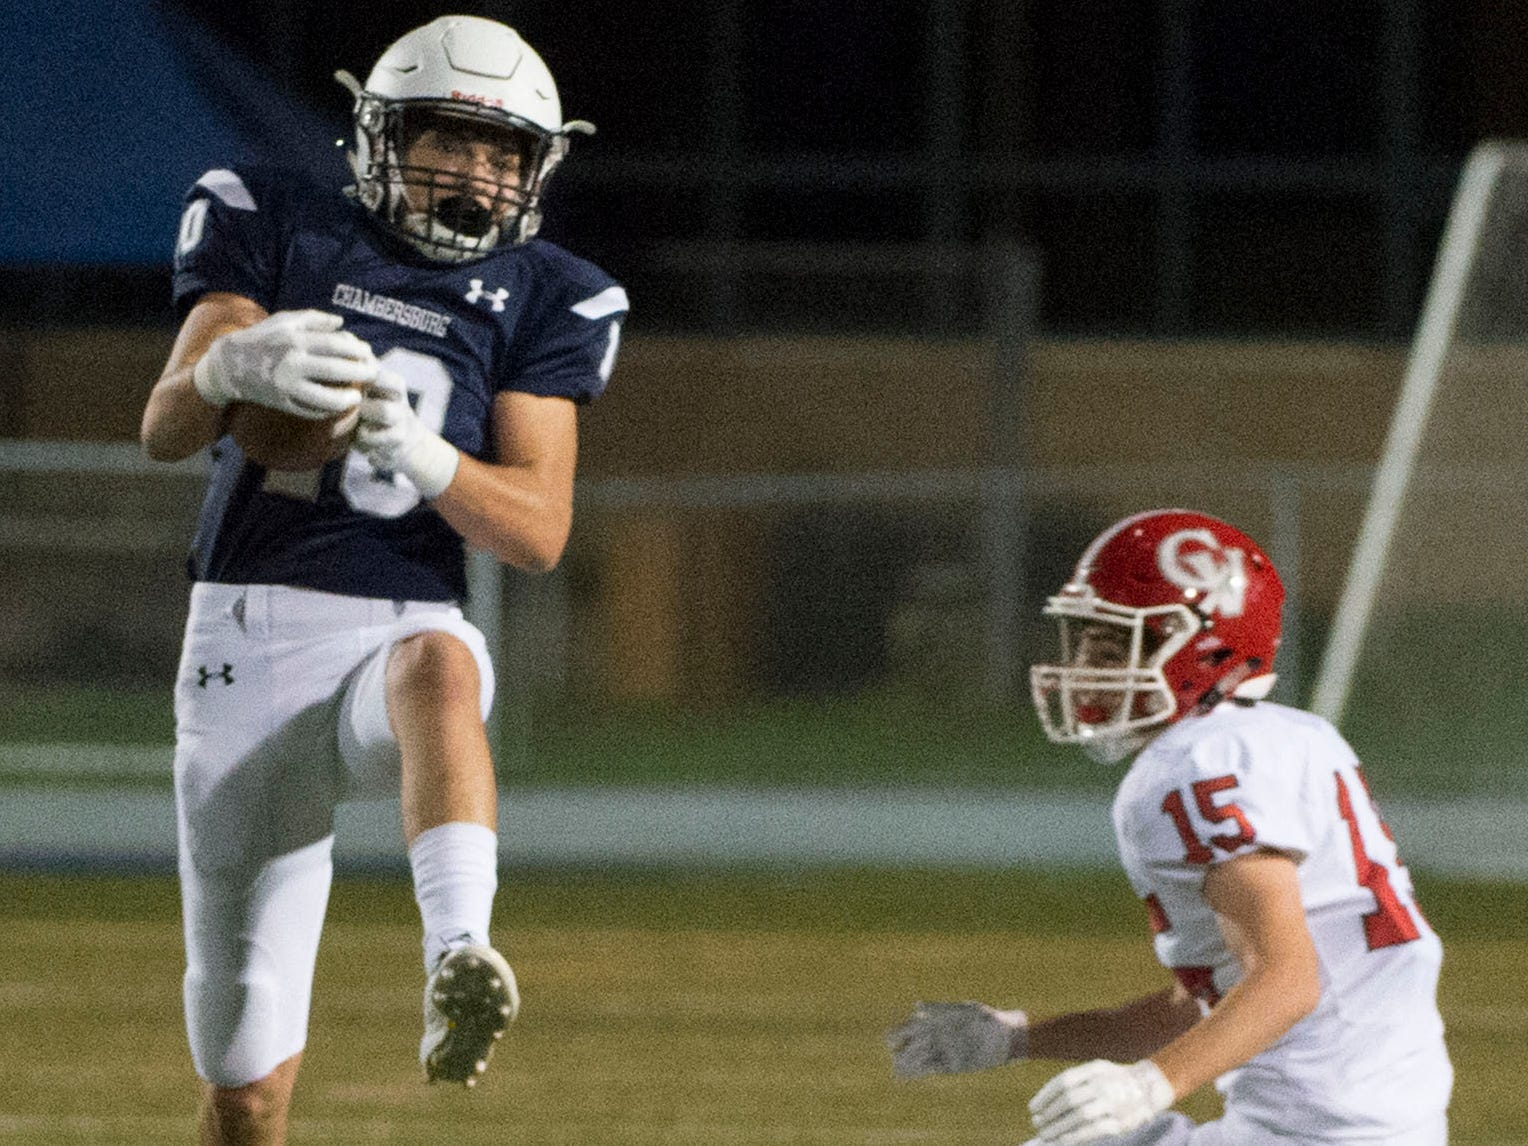 Chambersburg's Brady Hughes catches a pass. Chambersburg Trojans are 5-1 after a homecoming victory over Cumberland Valley 28-14 in PIAA football on Friday, Sept. 28, 2018.